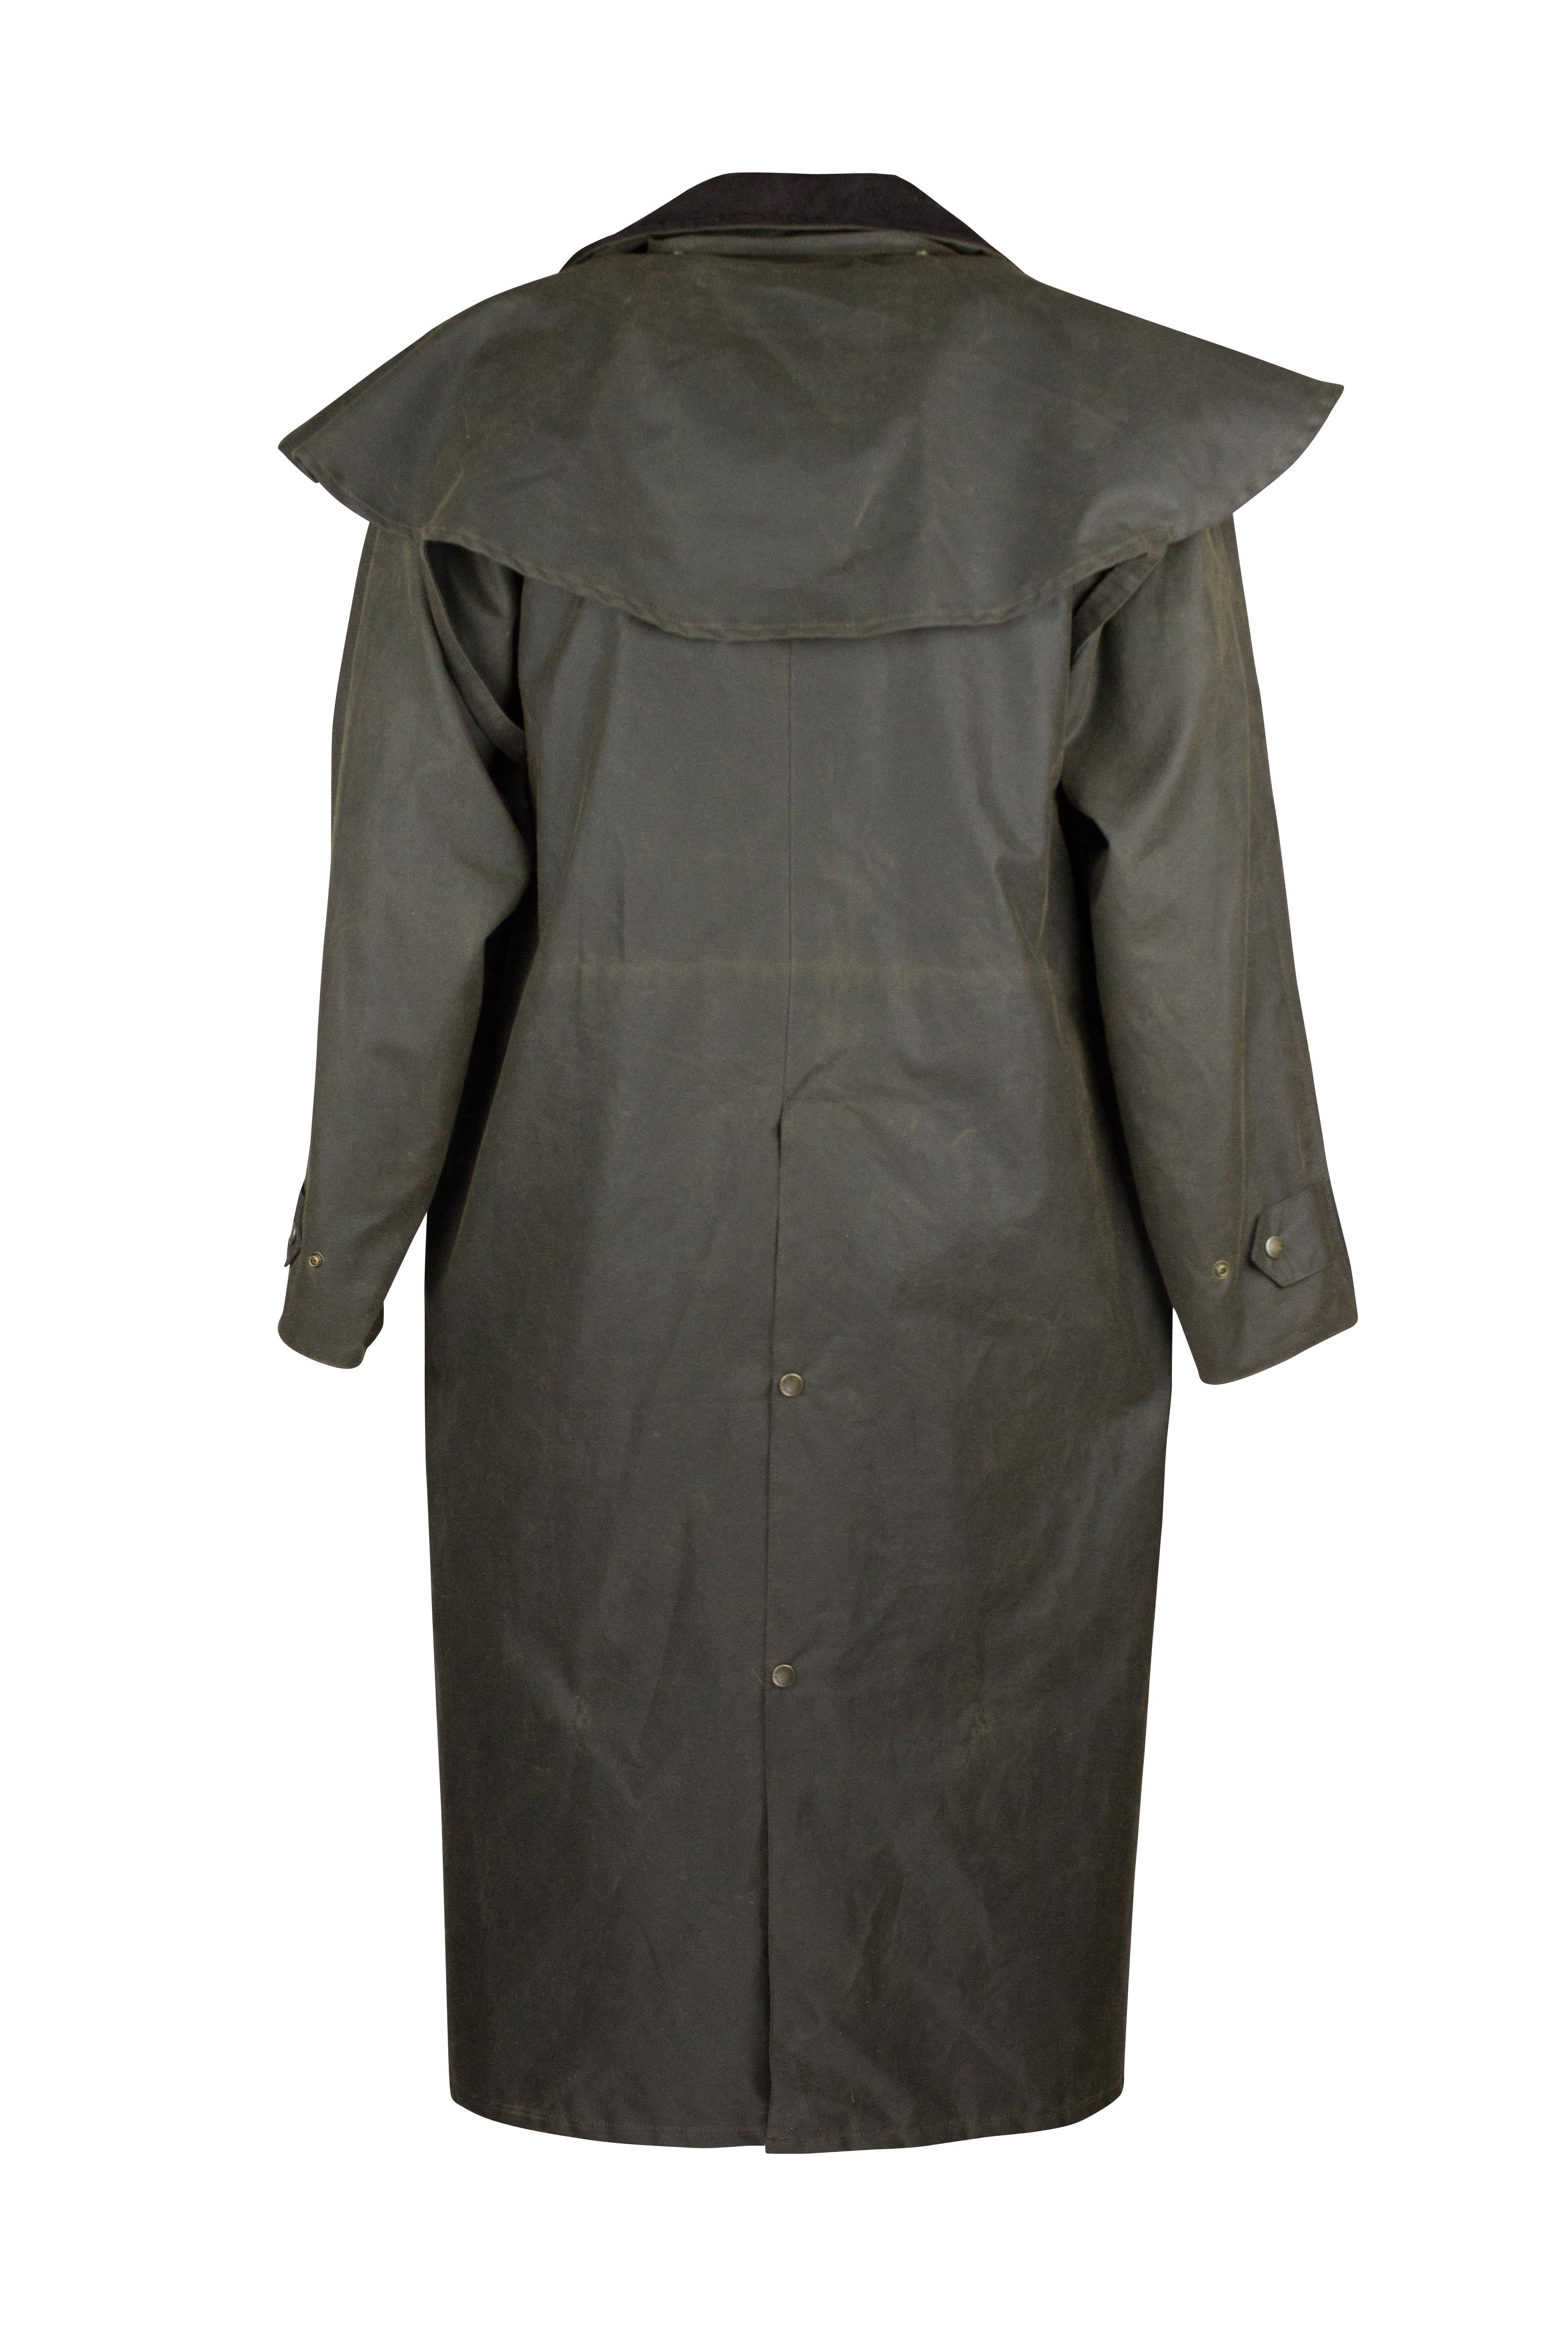 W70 - Deluxe Wax Outback Cape - DARK OLIVE - Oxford Blue